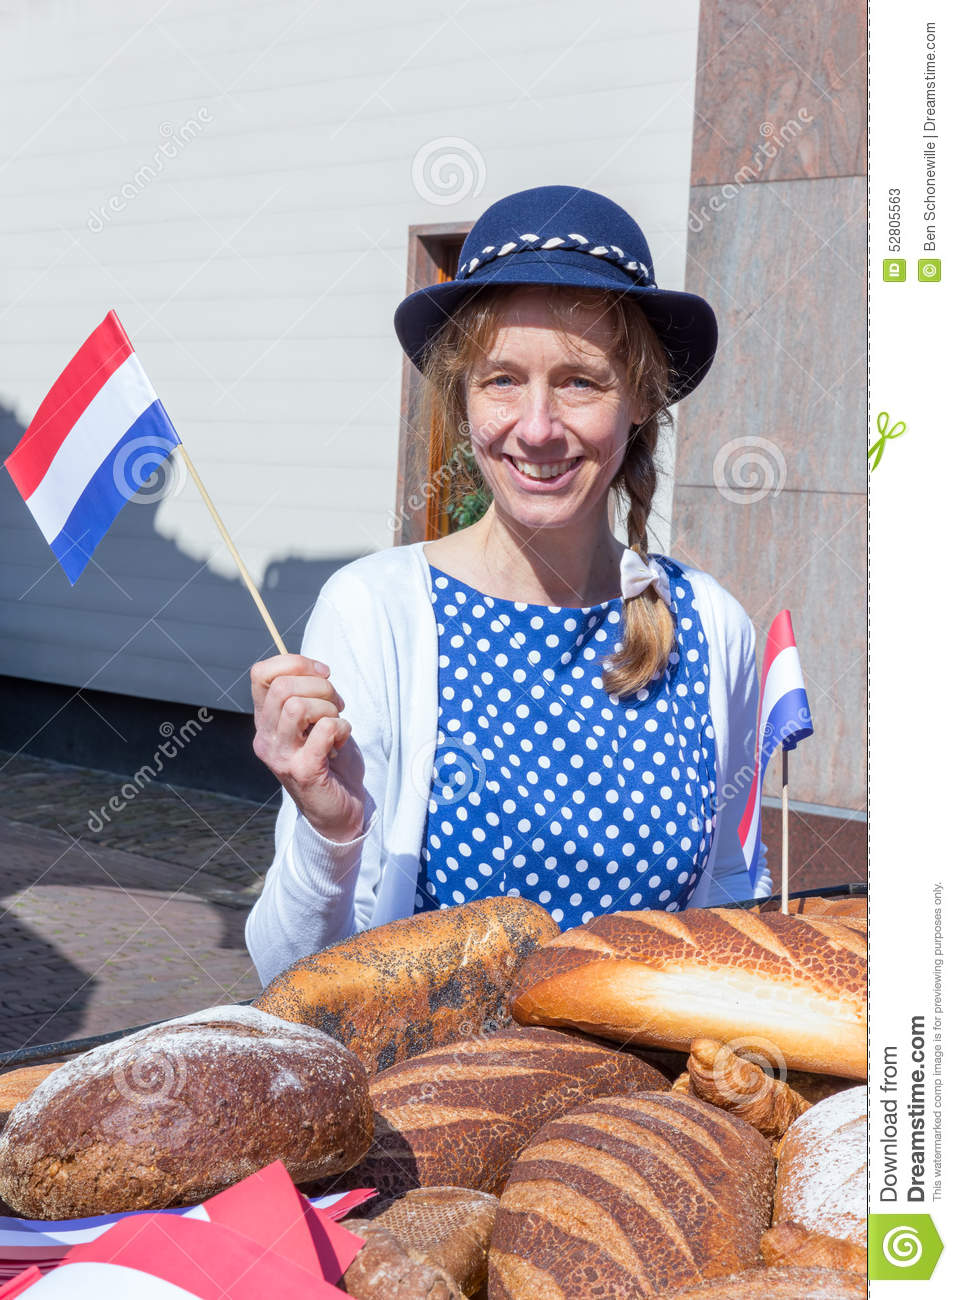 Woman with breads waving with dutch flag